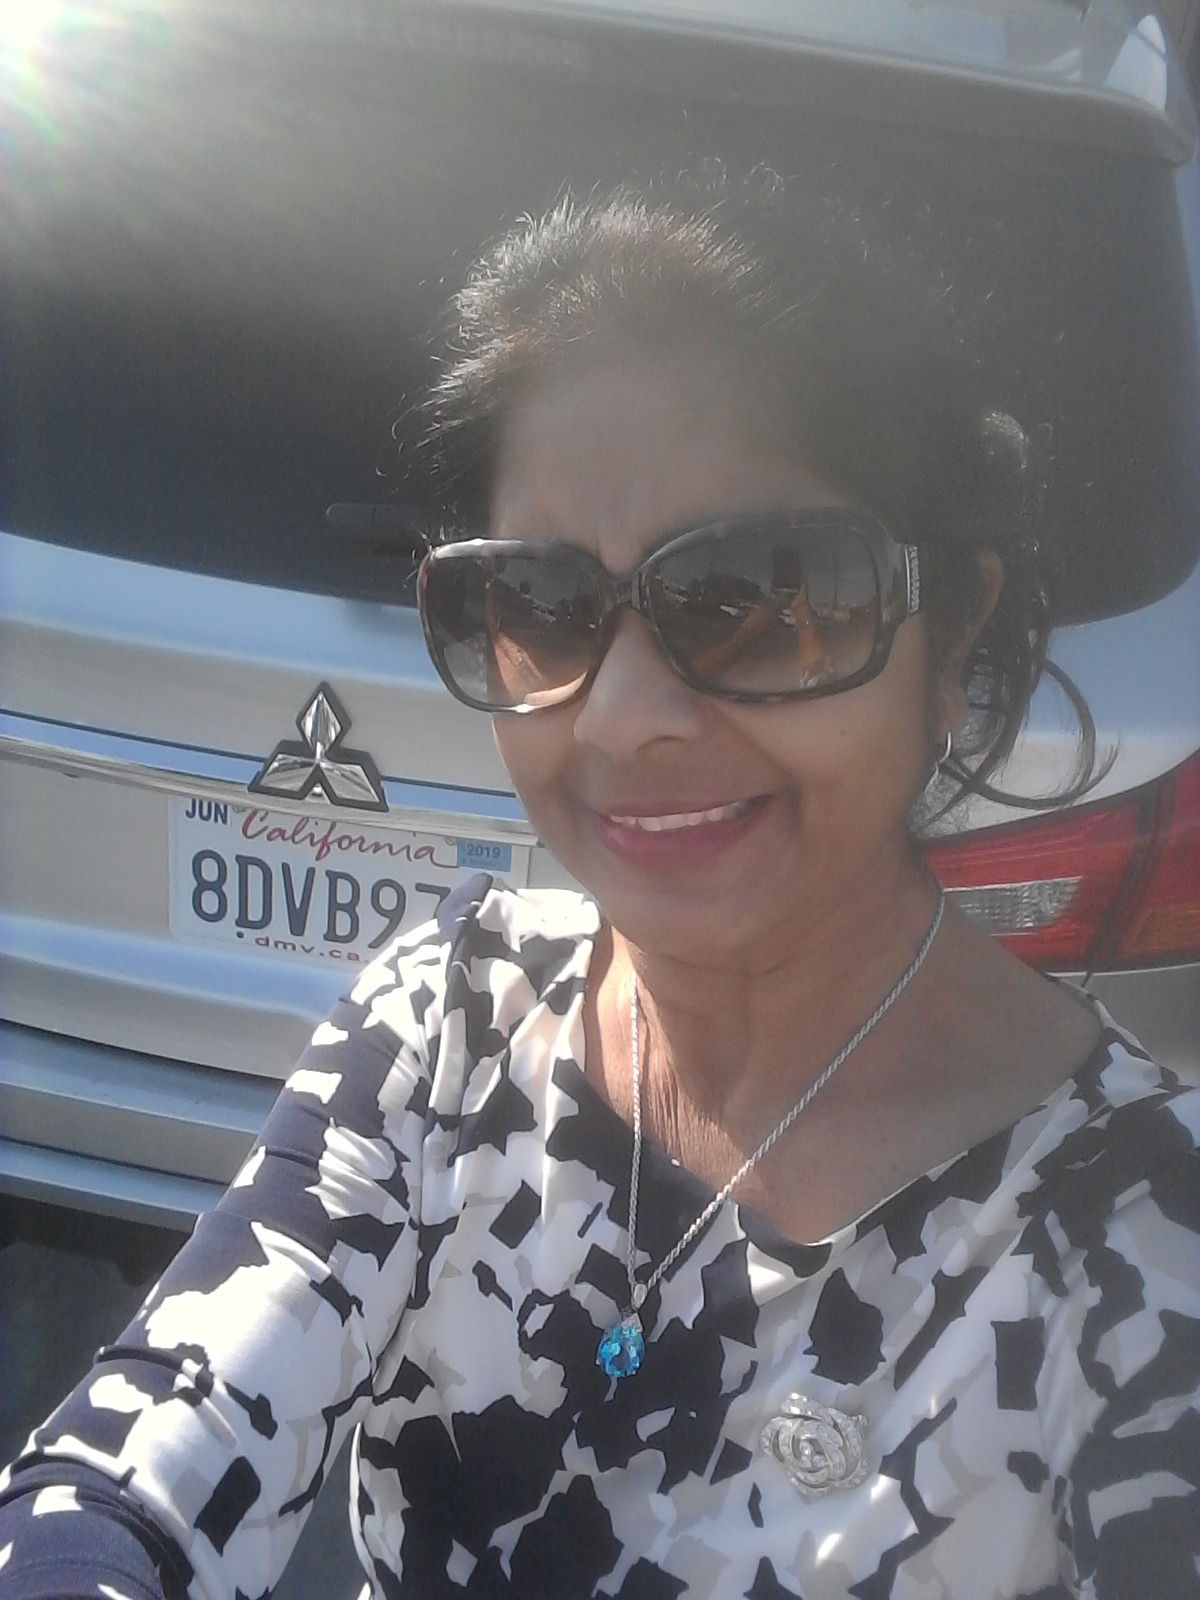 Selfie 11/17/2018 - on my way to a wedding at Pacific Palms Resort, Industry City, CA. Beautiful place with fabulous views. That's my rented car for the occasion.